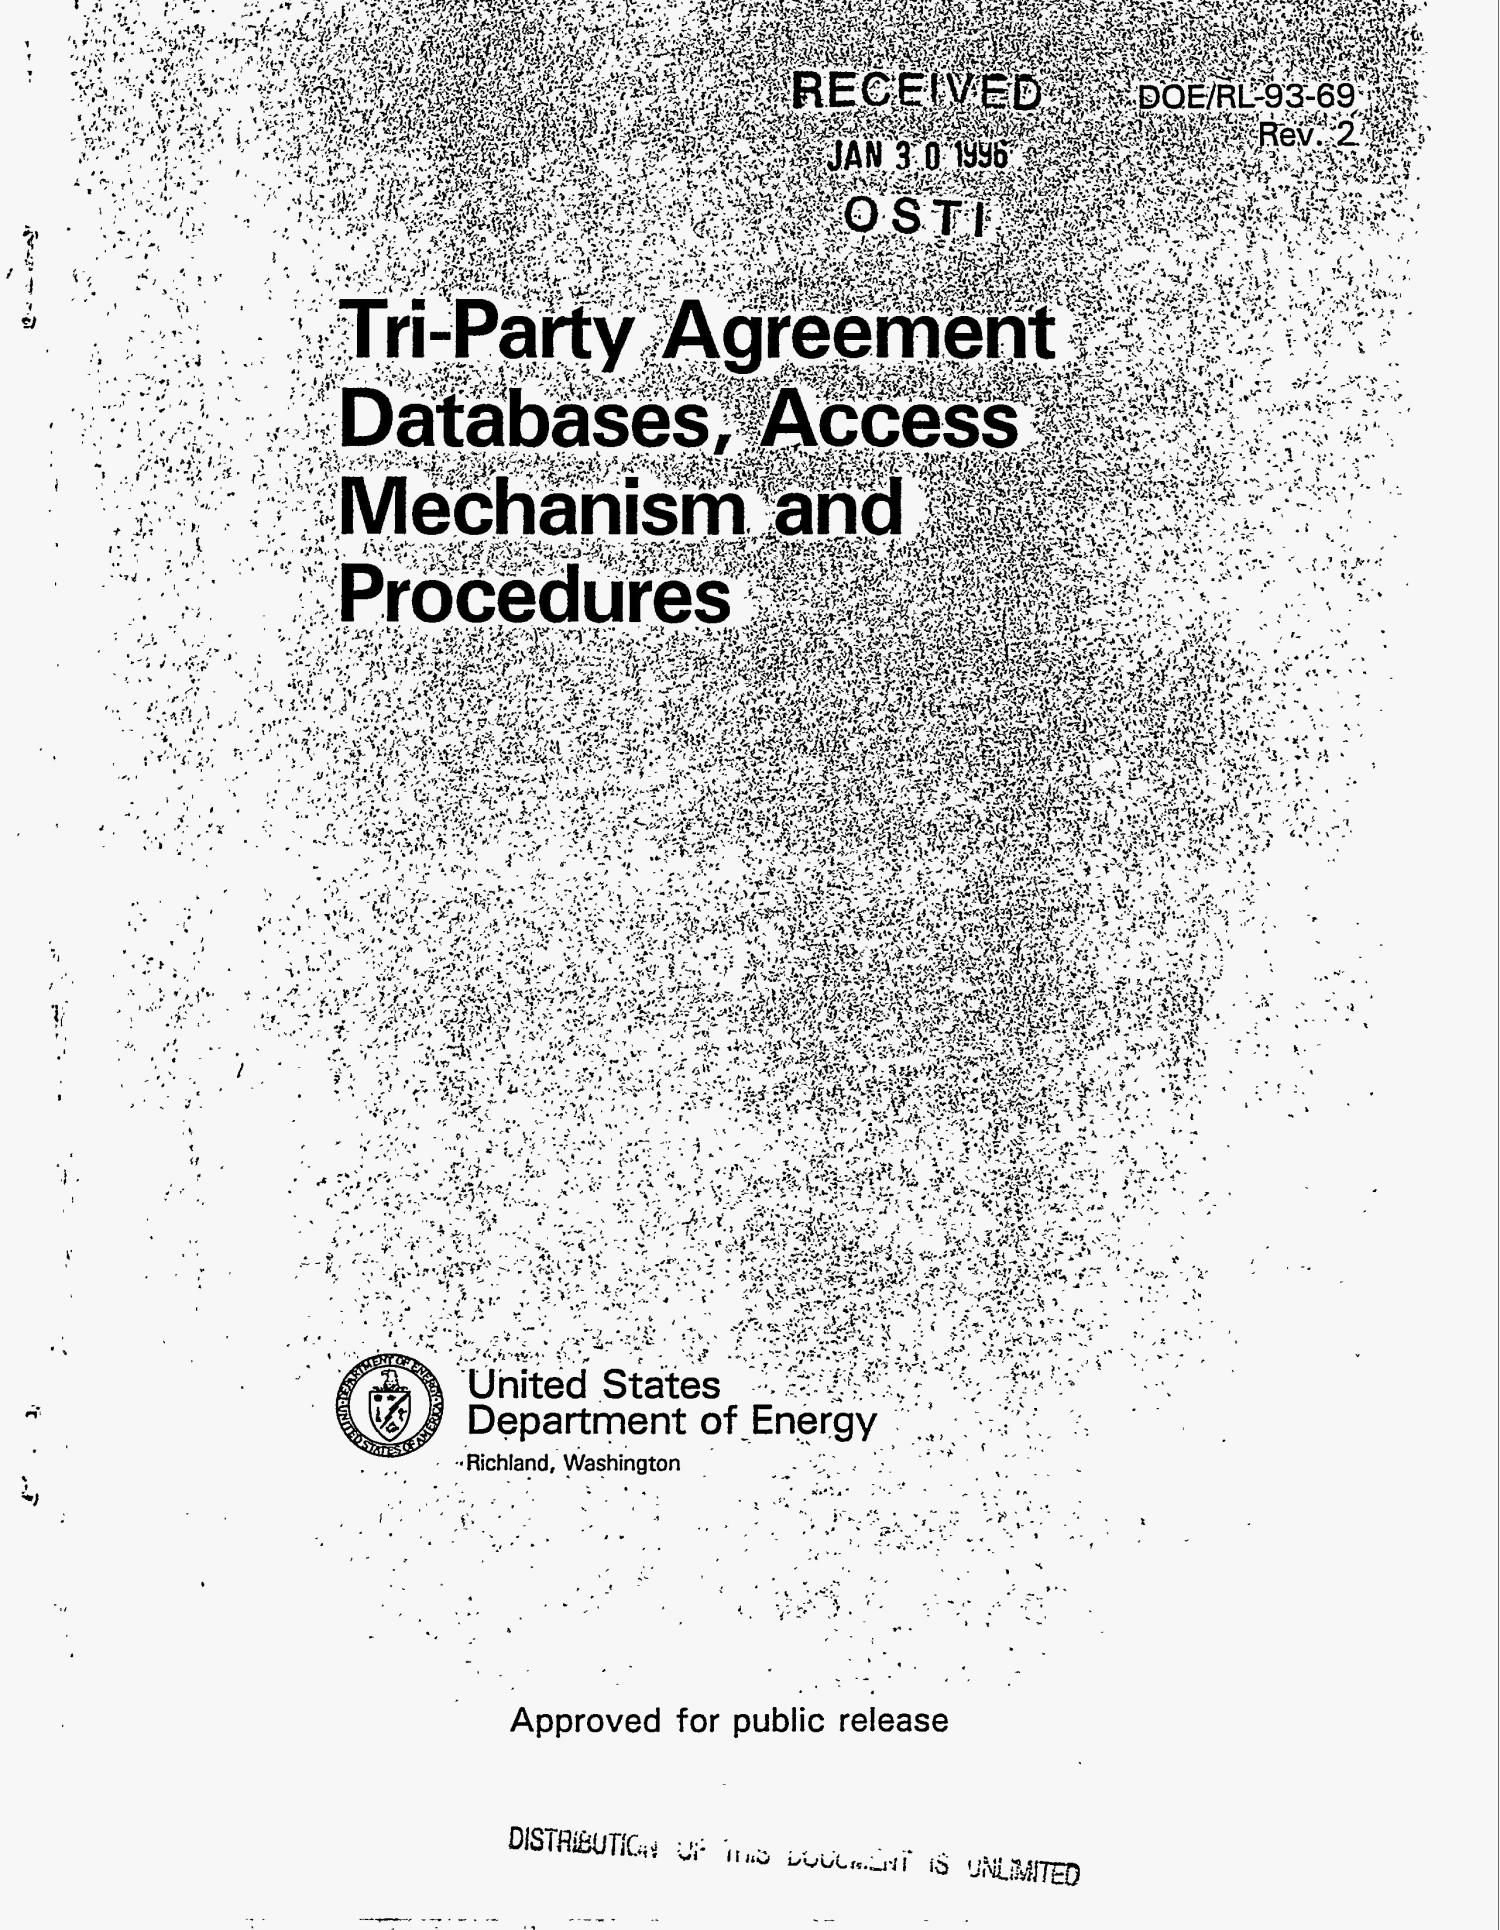 Tri-party agreement databases, access mechanism and